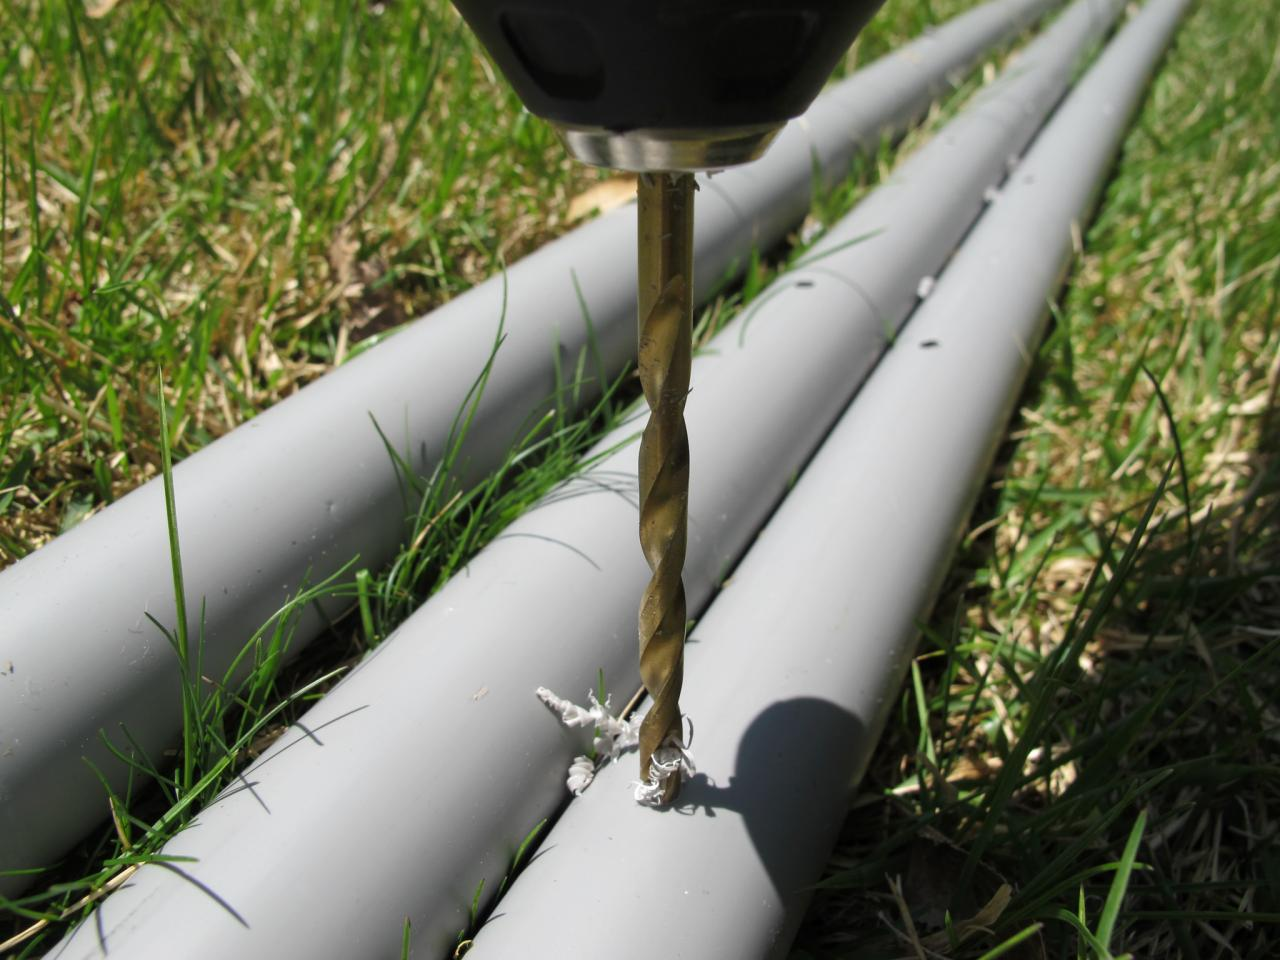 How To Make A Tripod Garden Trellis From Pvc Pipe How